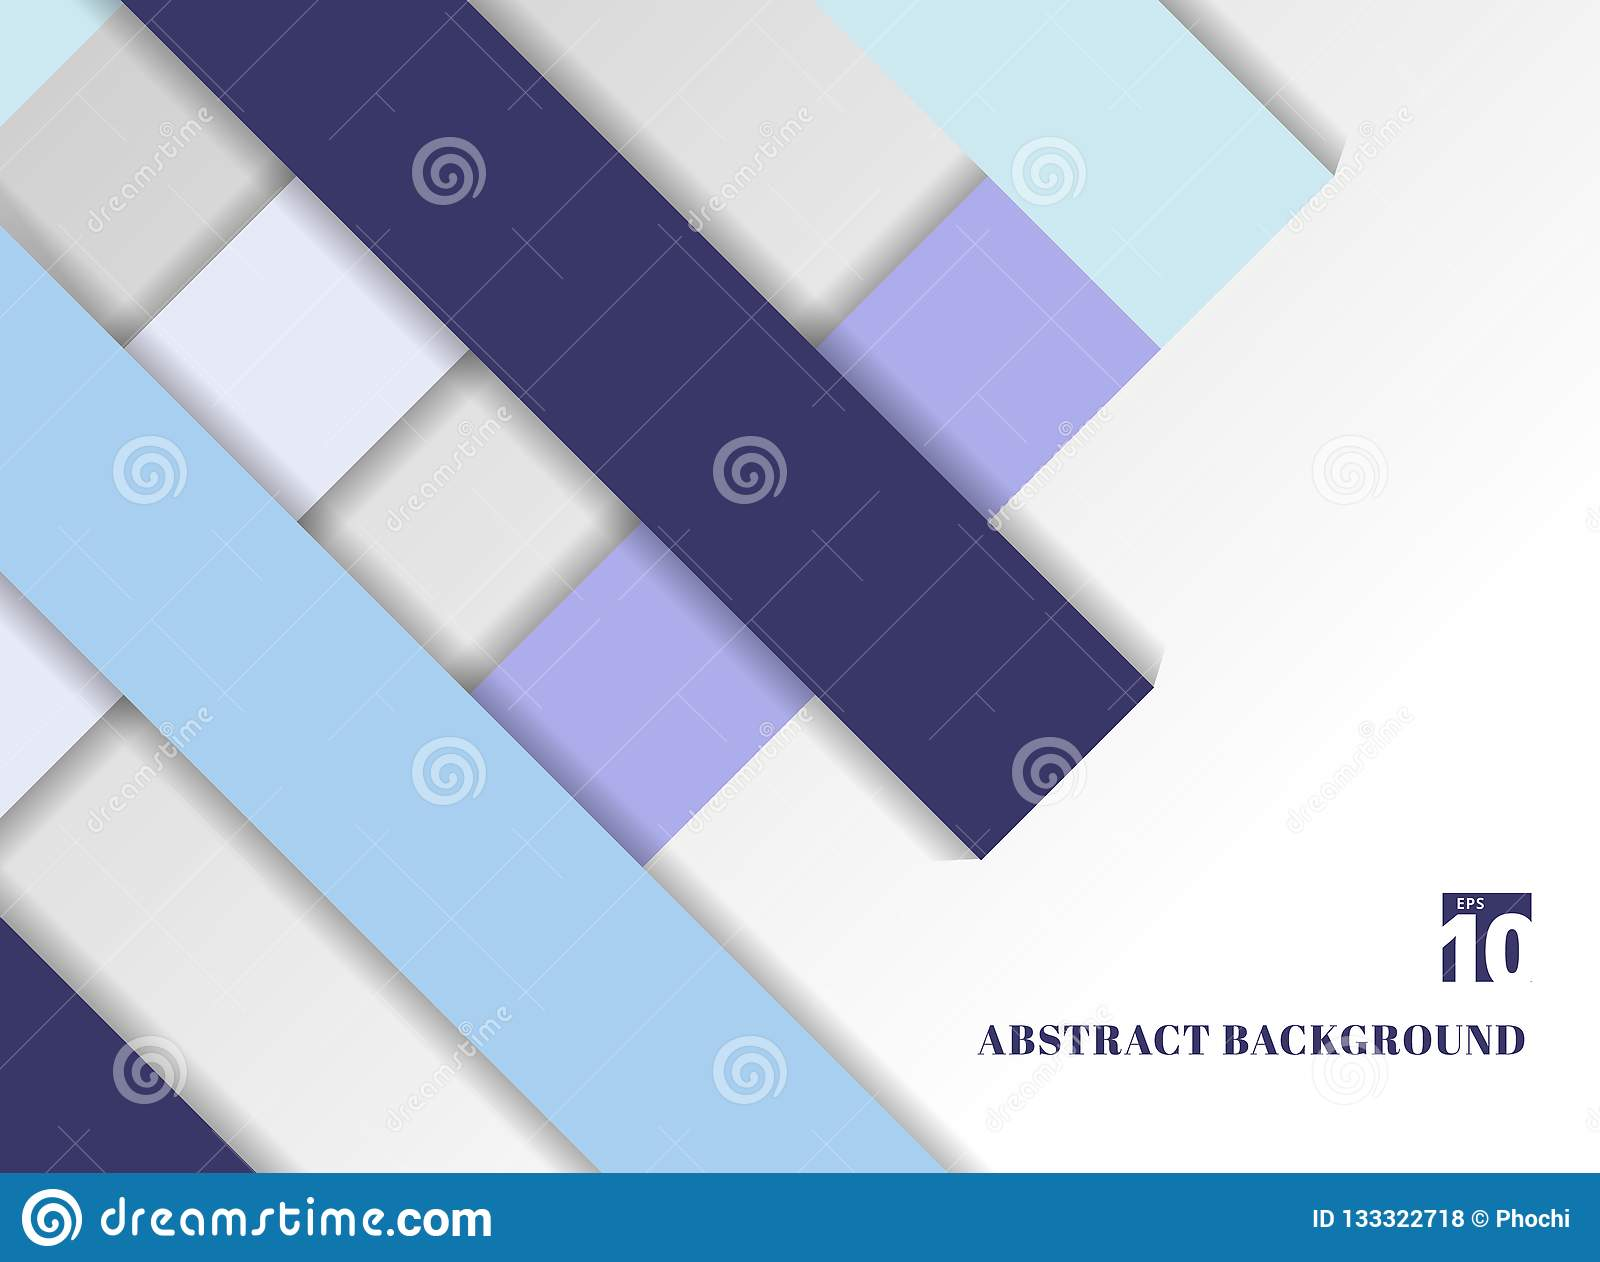 Template abstract geometric blue color tone background with square frames.